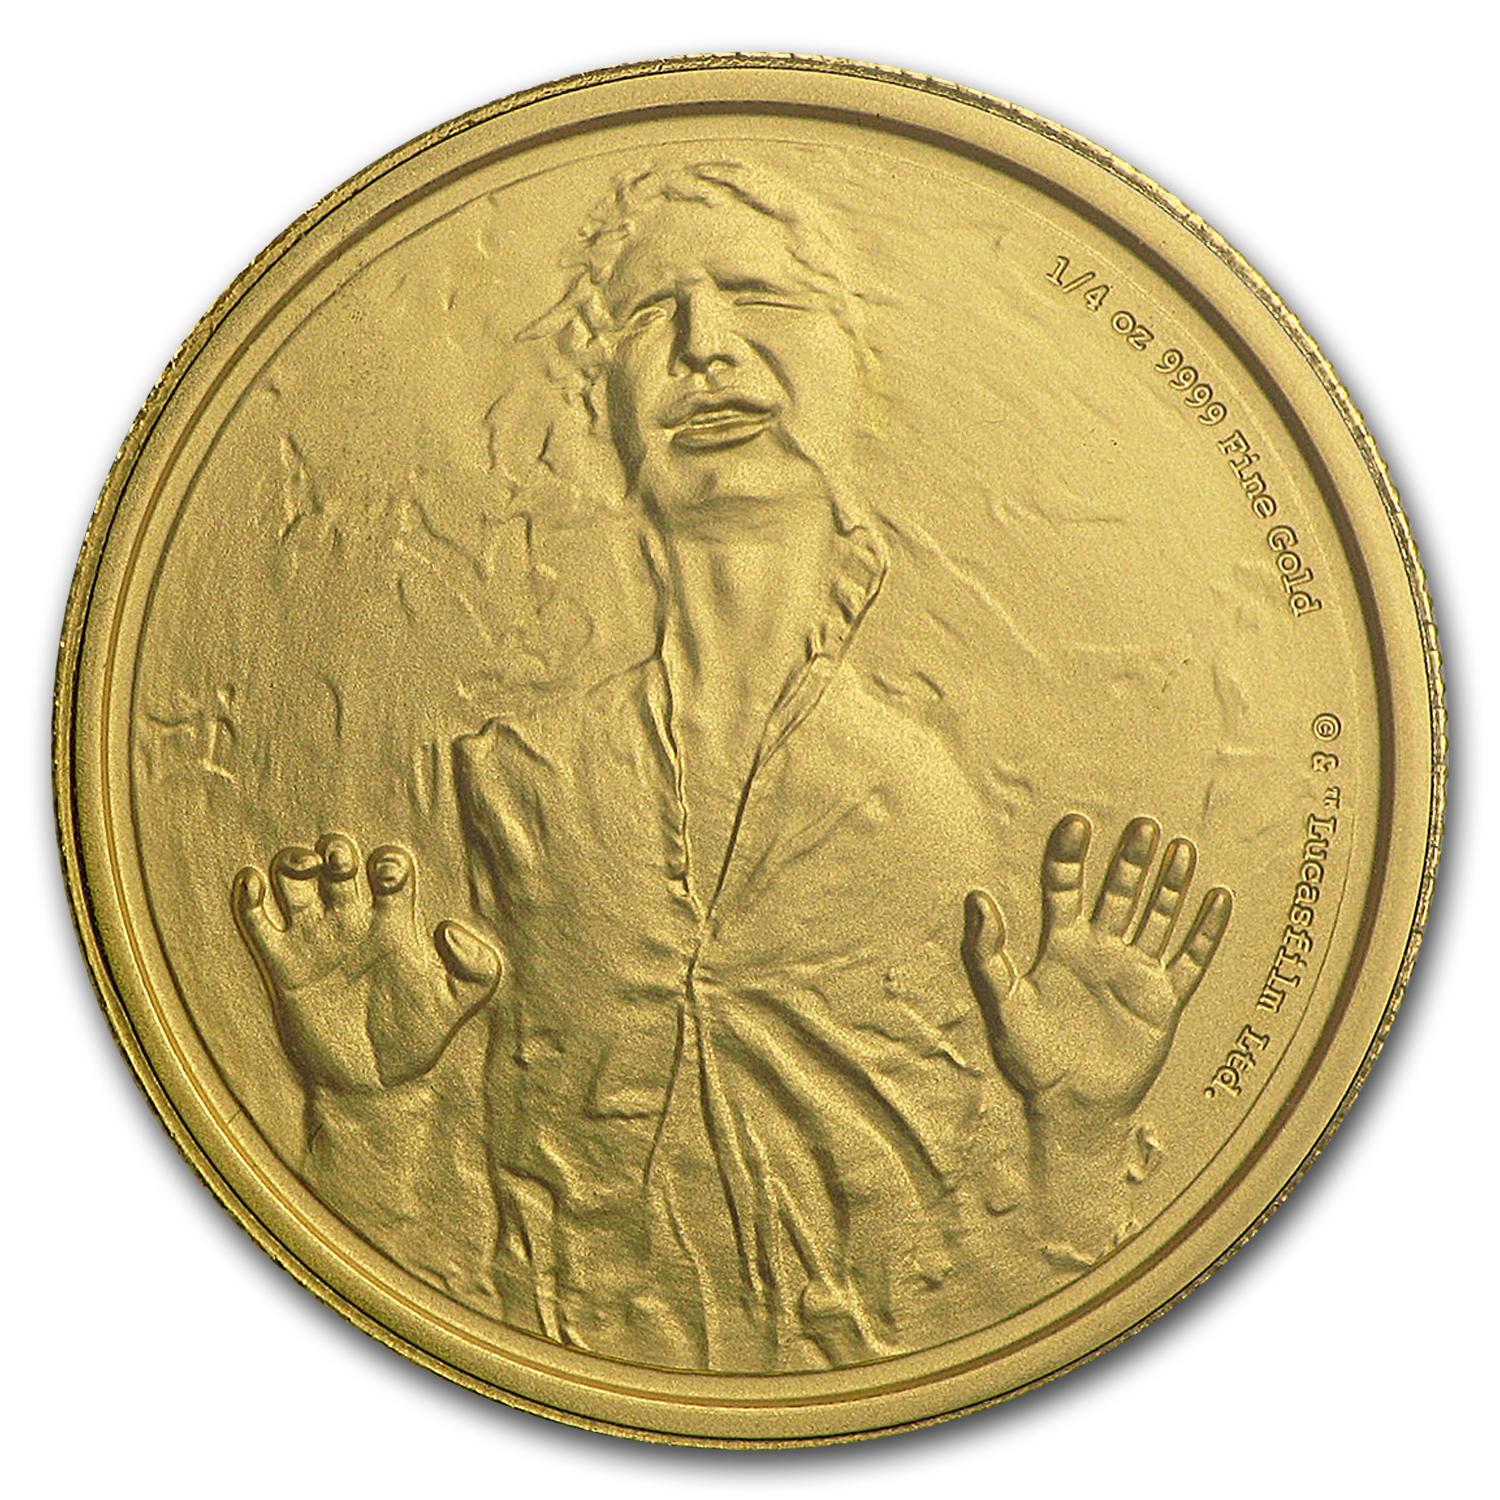 2016 Niue 1/4 oz Gold $25 Star Wars Han Solo Proof (Box & COA)